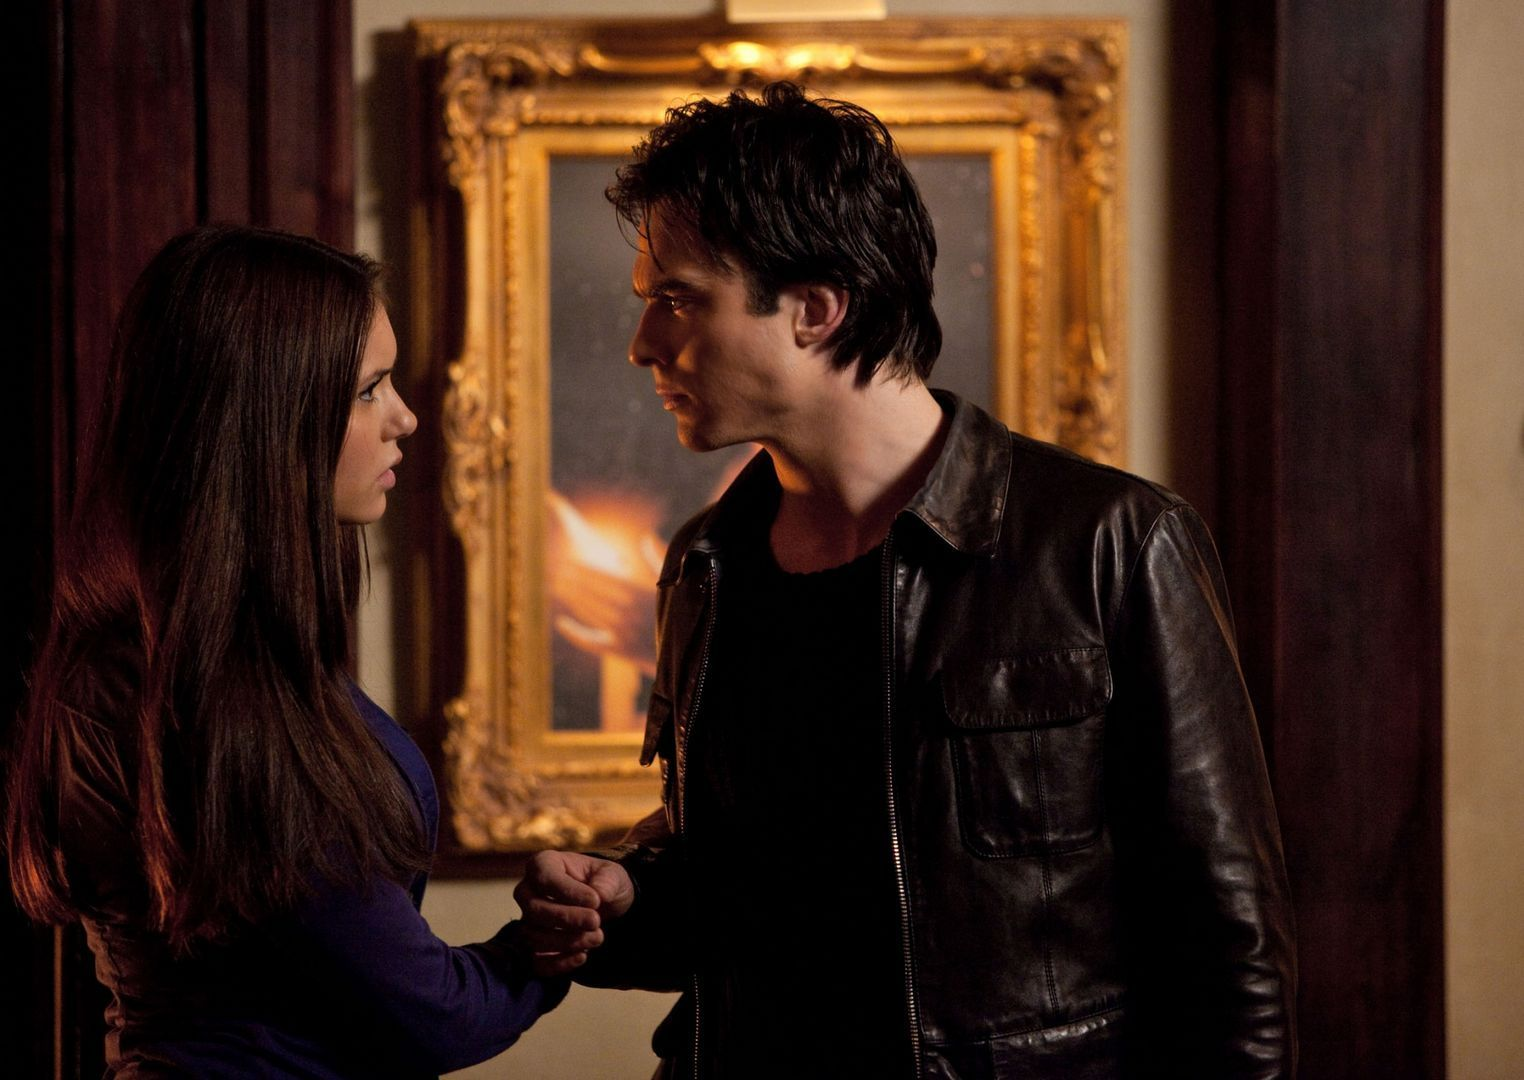 http://images2.fanpop.com/image/photos/11300000/1x20-Blood-Brothers-Promotional-Photos-the-vampire-diaries-tv-show-11380890-1524-1080.jpg